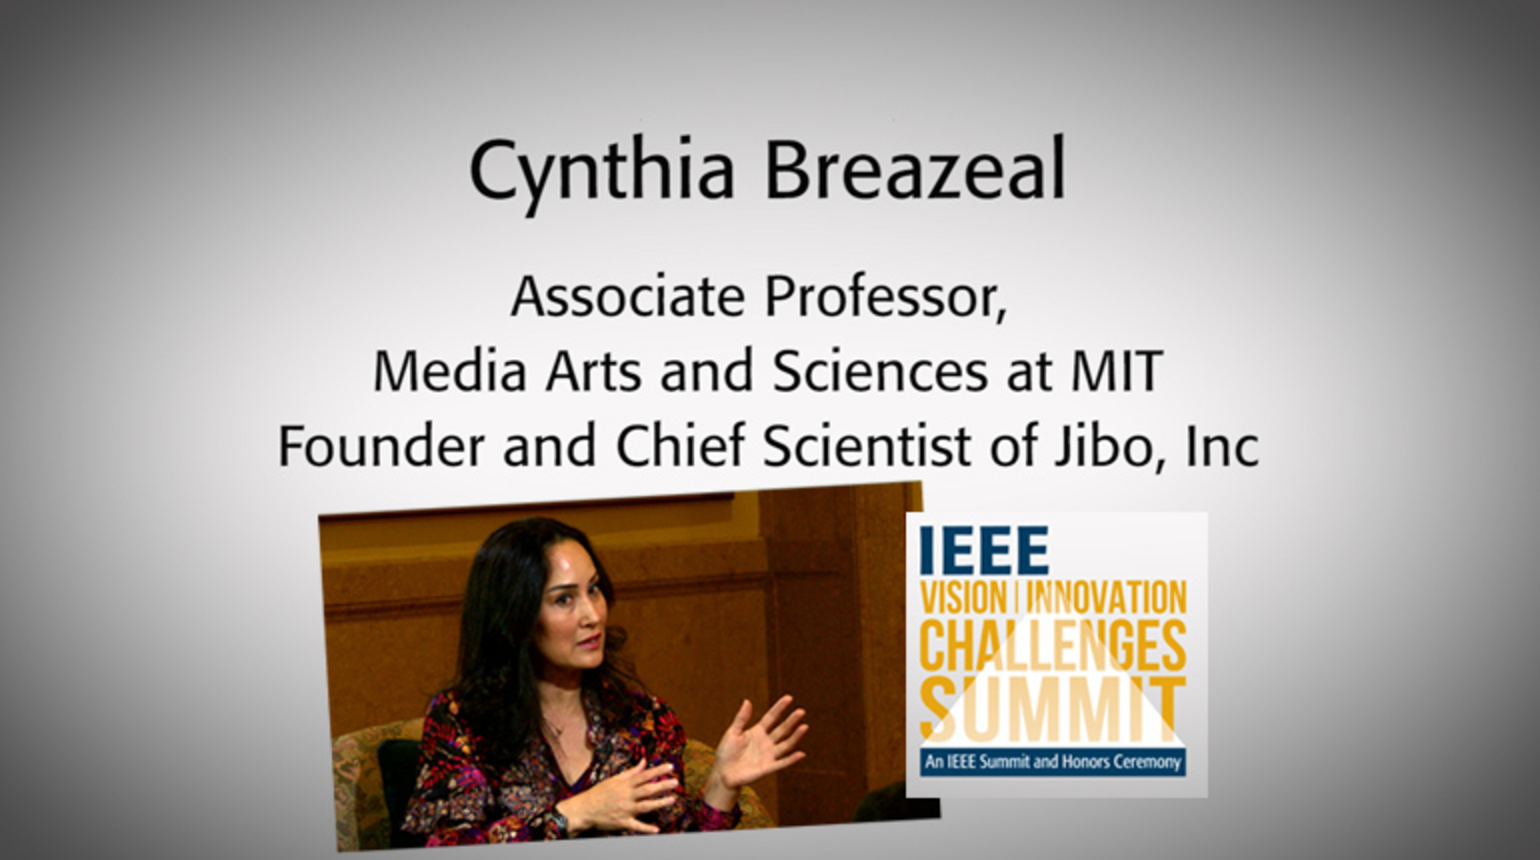 An Interview with Cynthia Breazeal: IEEE VIC Summit 2018